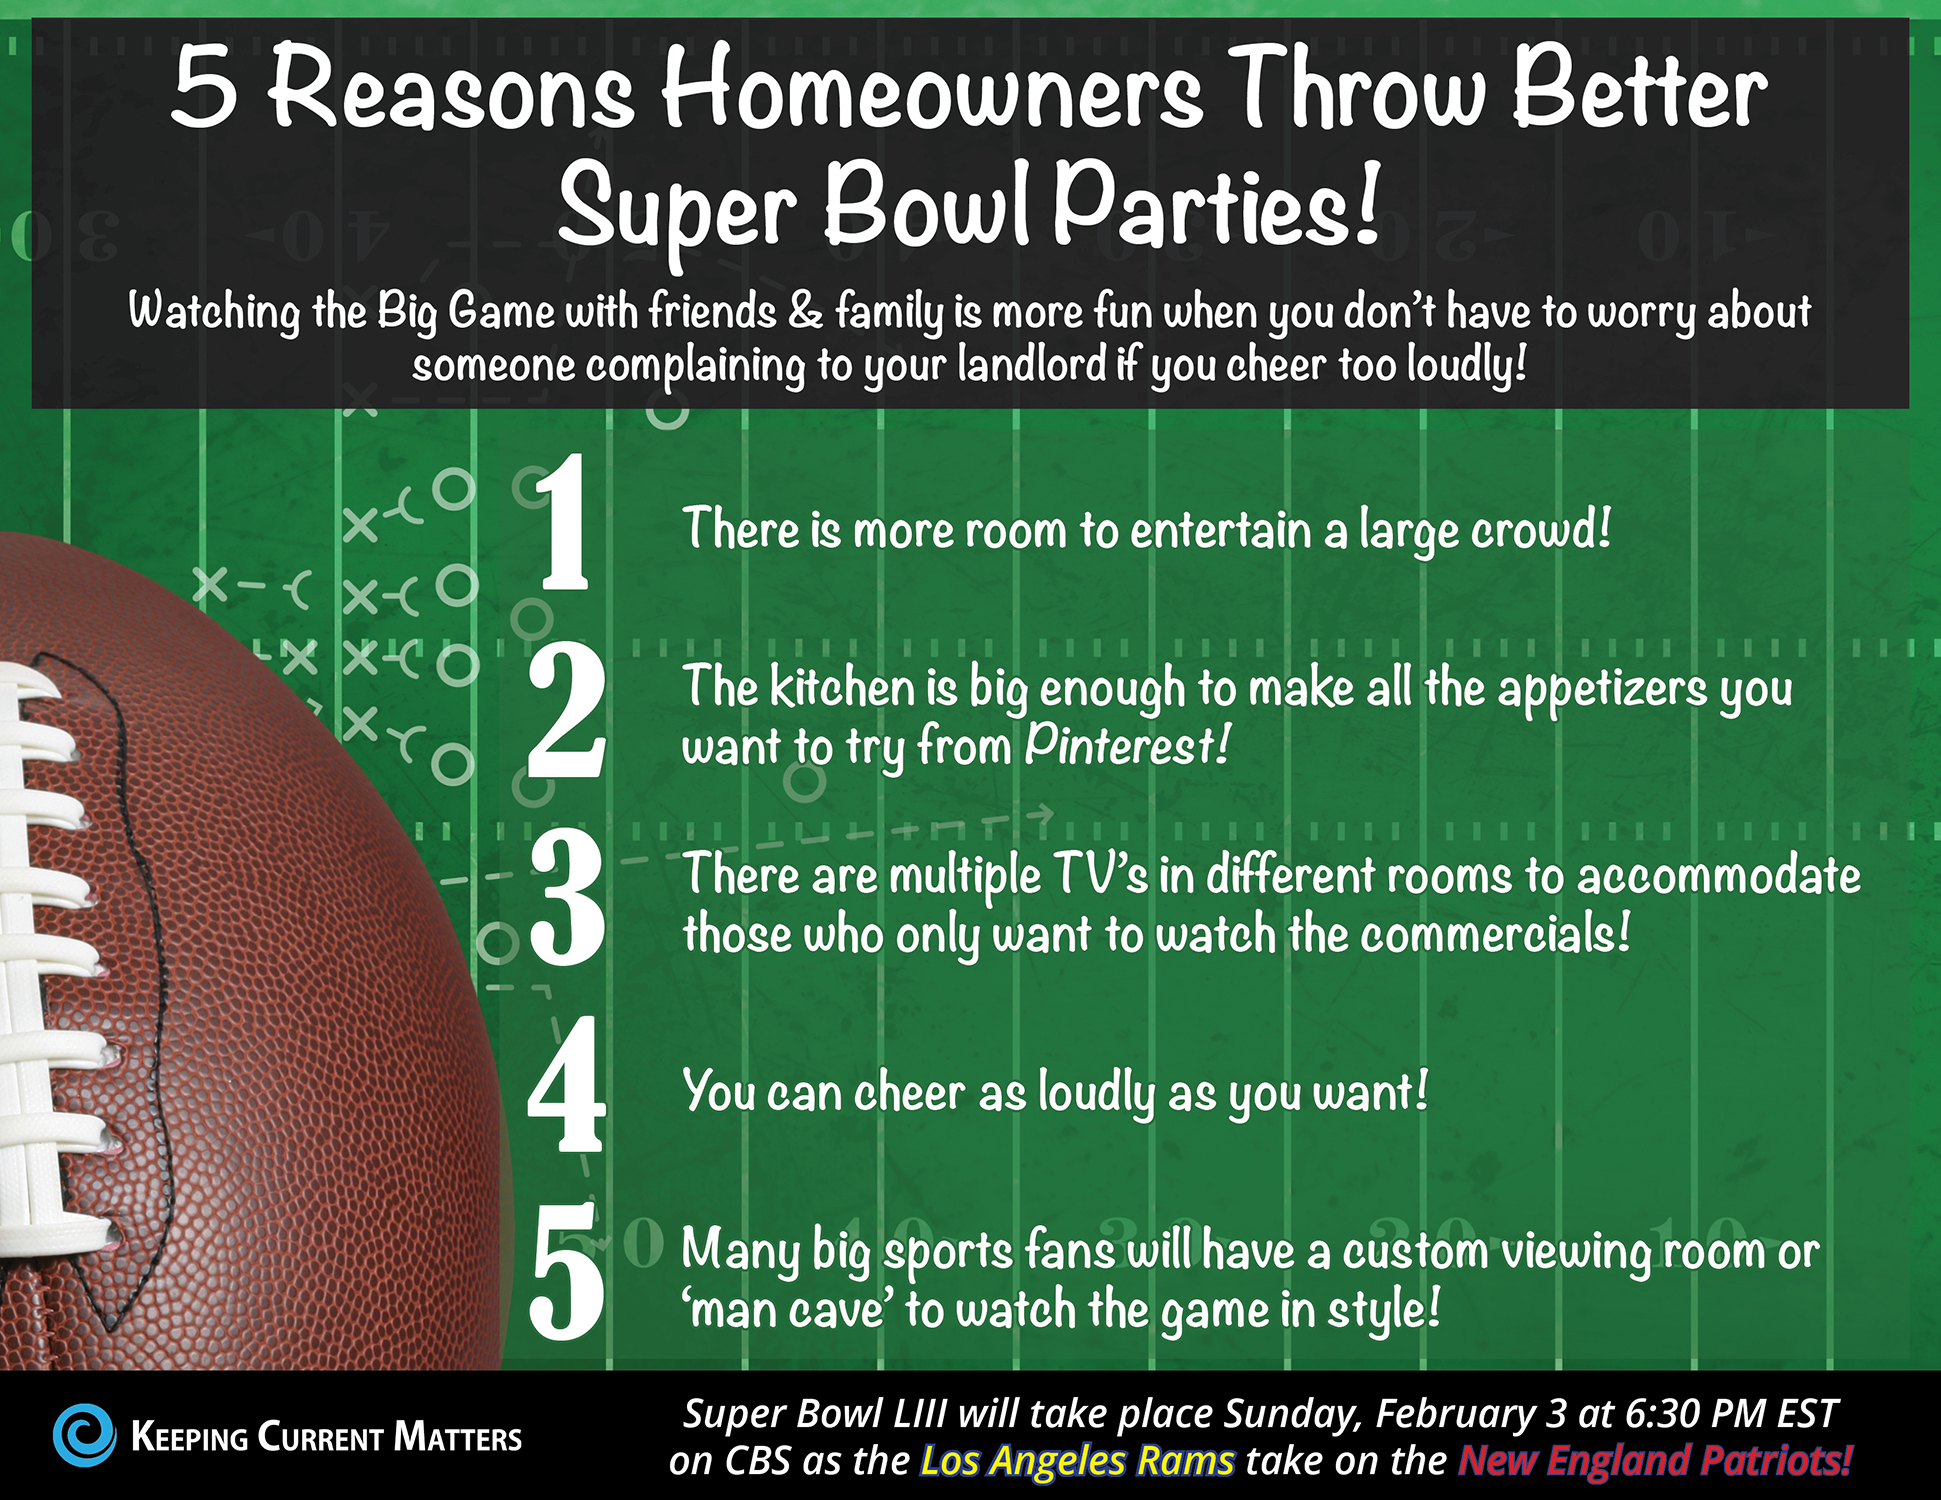 5 Reasons Homeowners Throw the Best Super Bowl Parties! [INFOGRAPHIC] | Keeping Current Matters